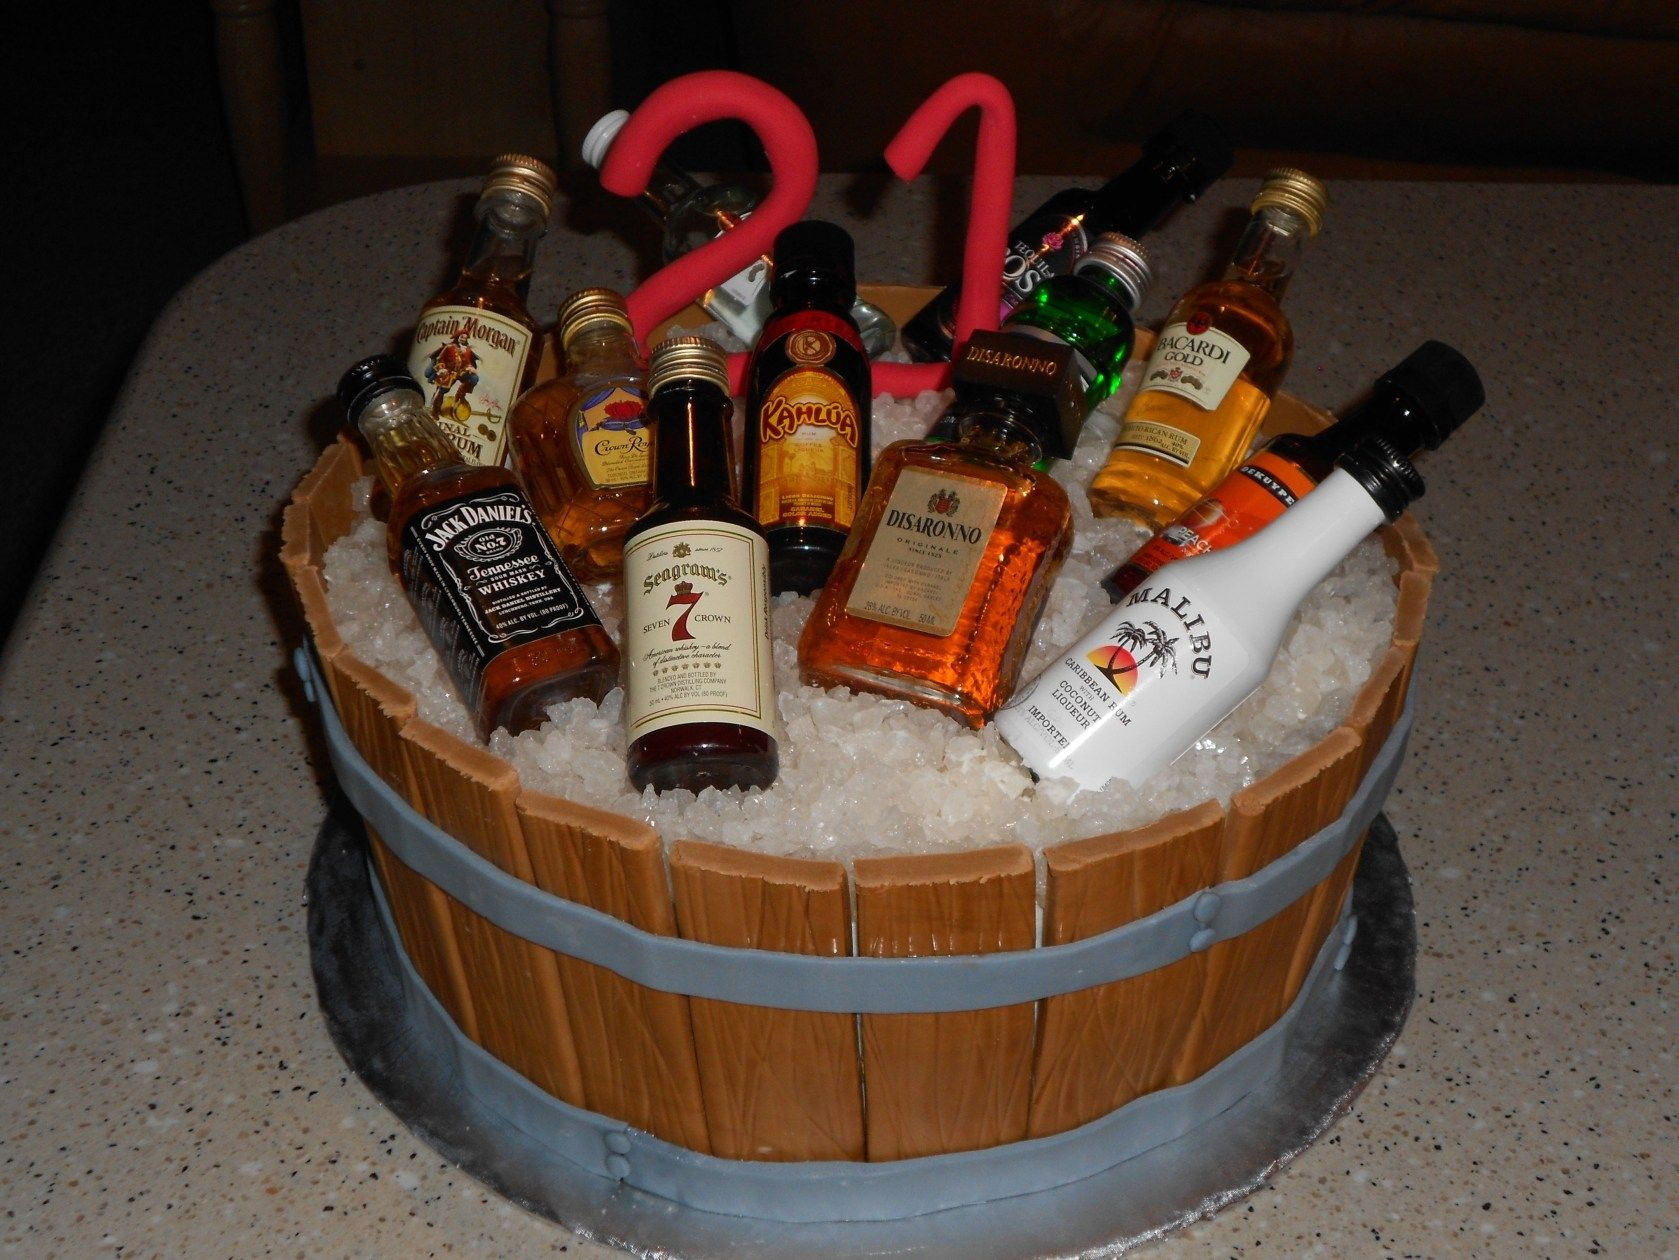 21st birthday cakes for him instead of the alcohol bouquet